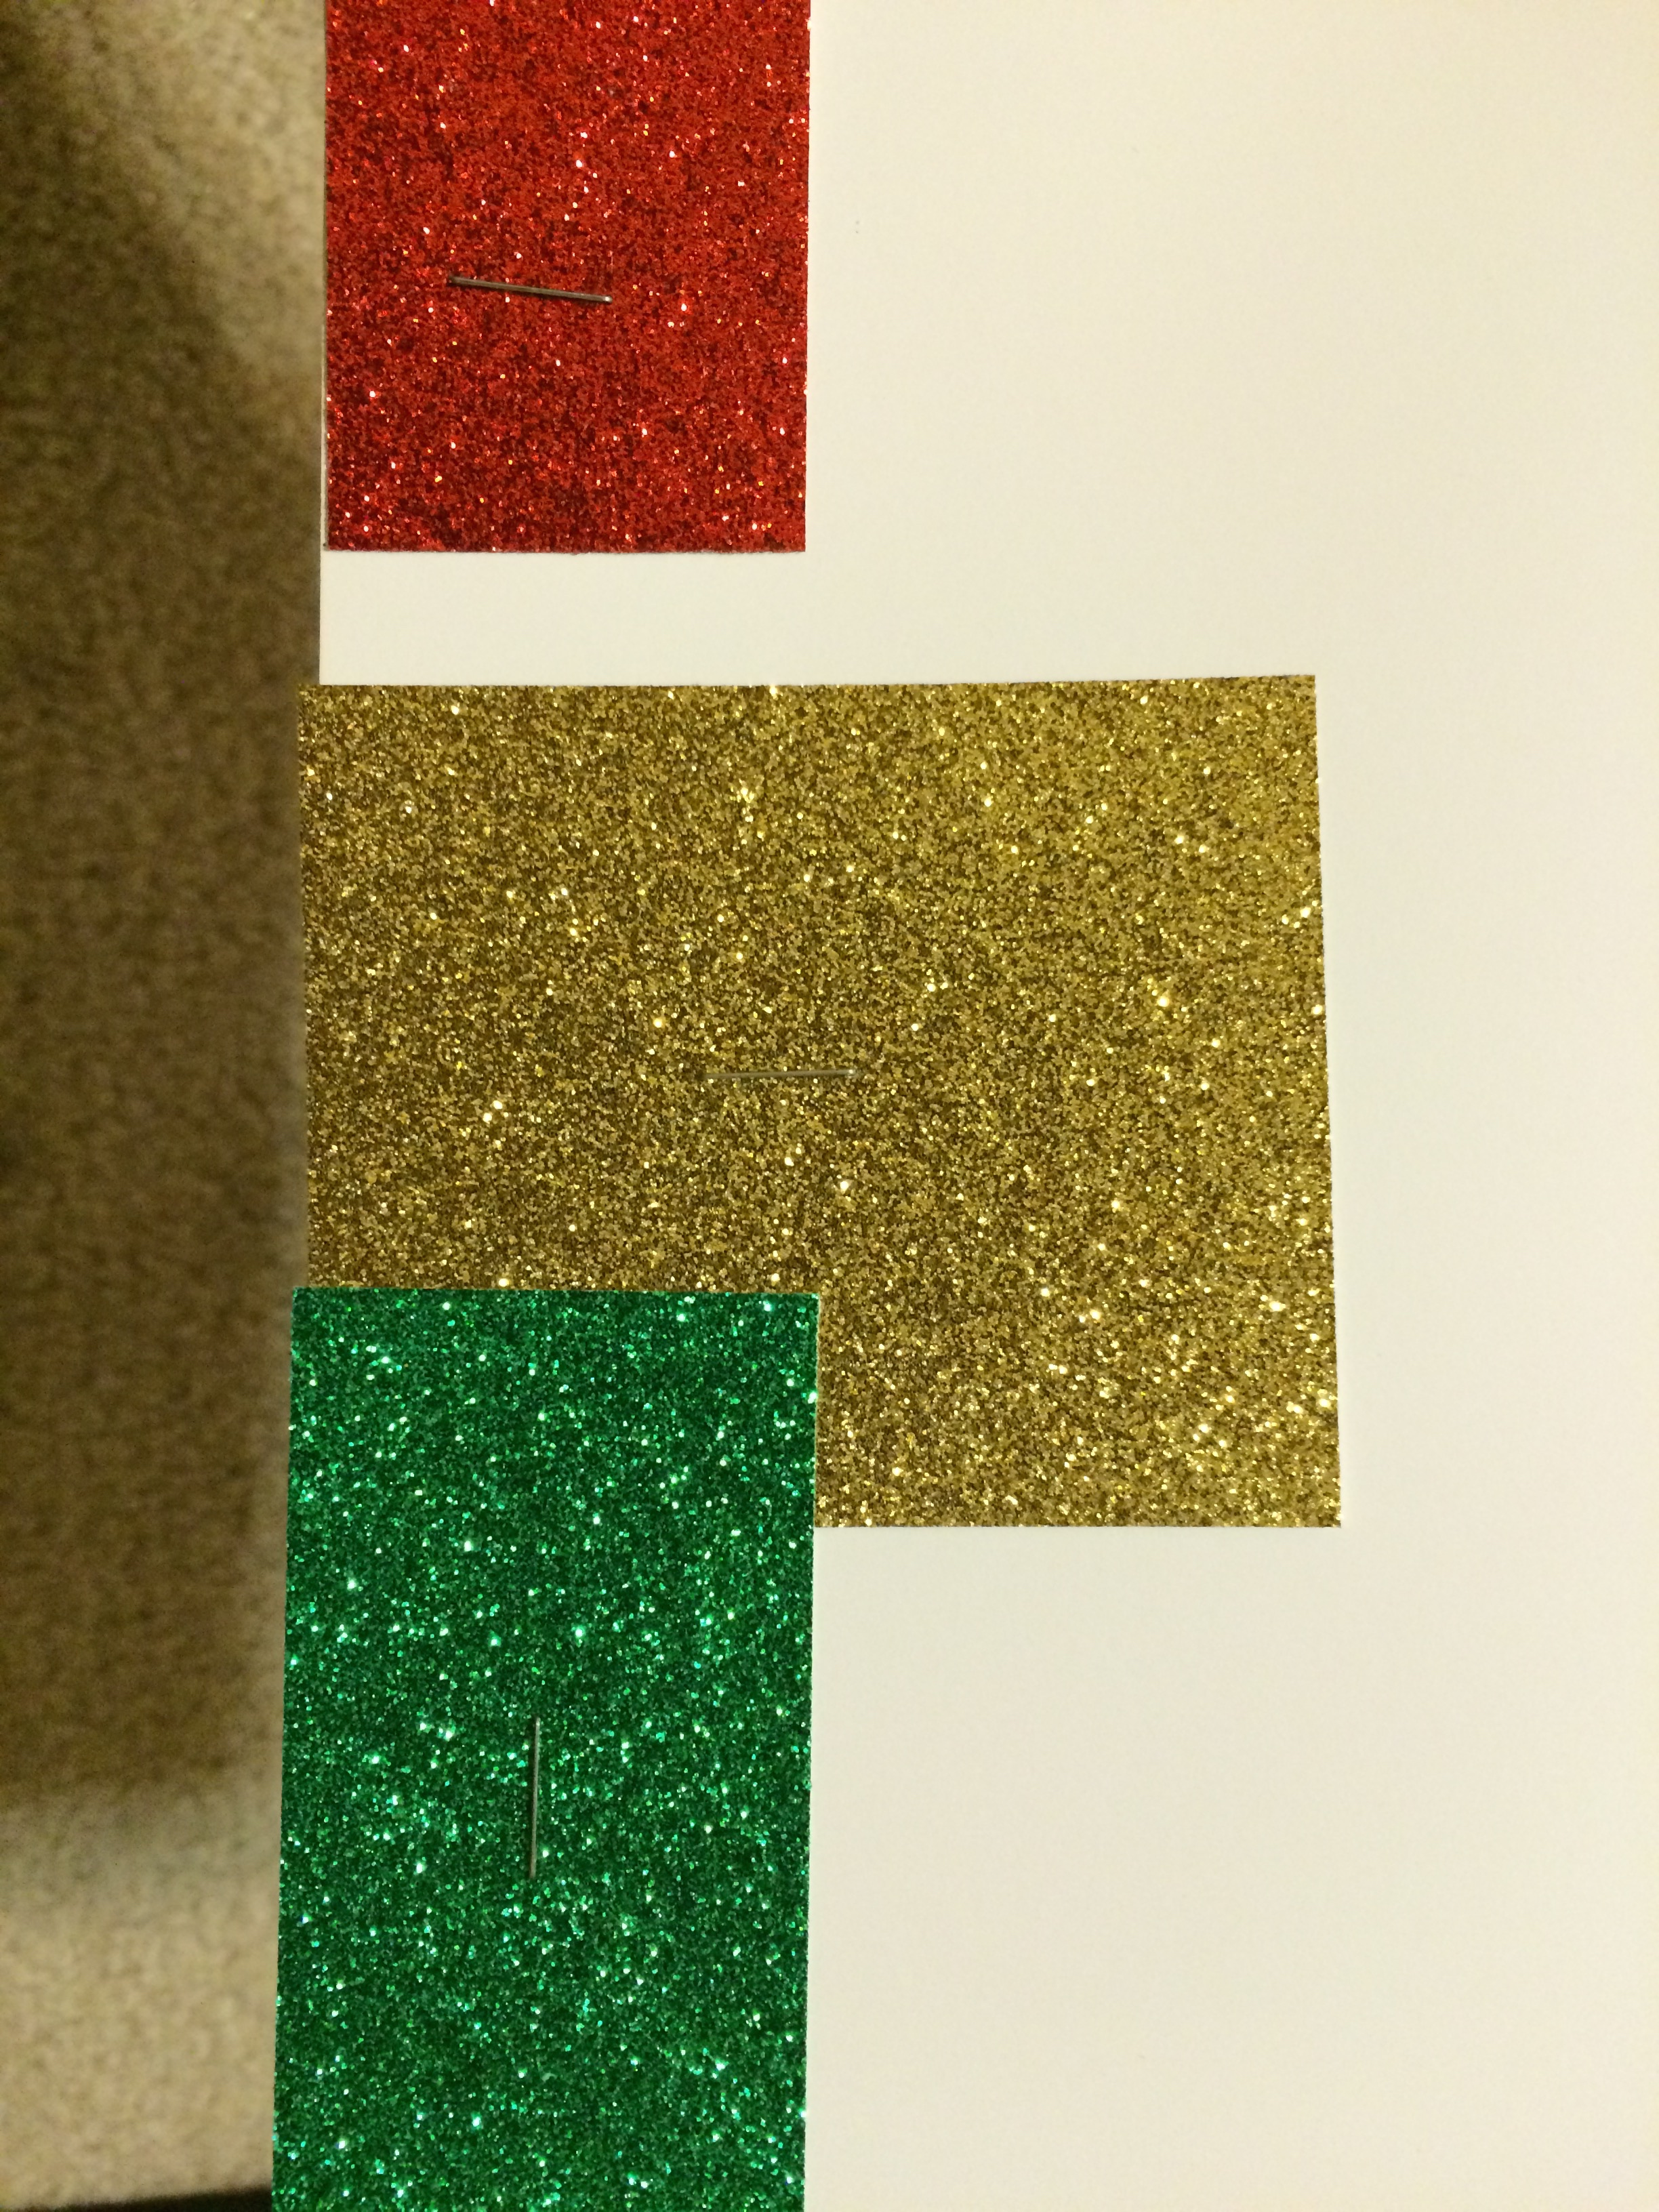 How to scrapbook with glitter paper - Img_7696 Jpg